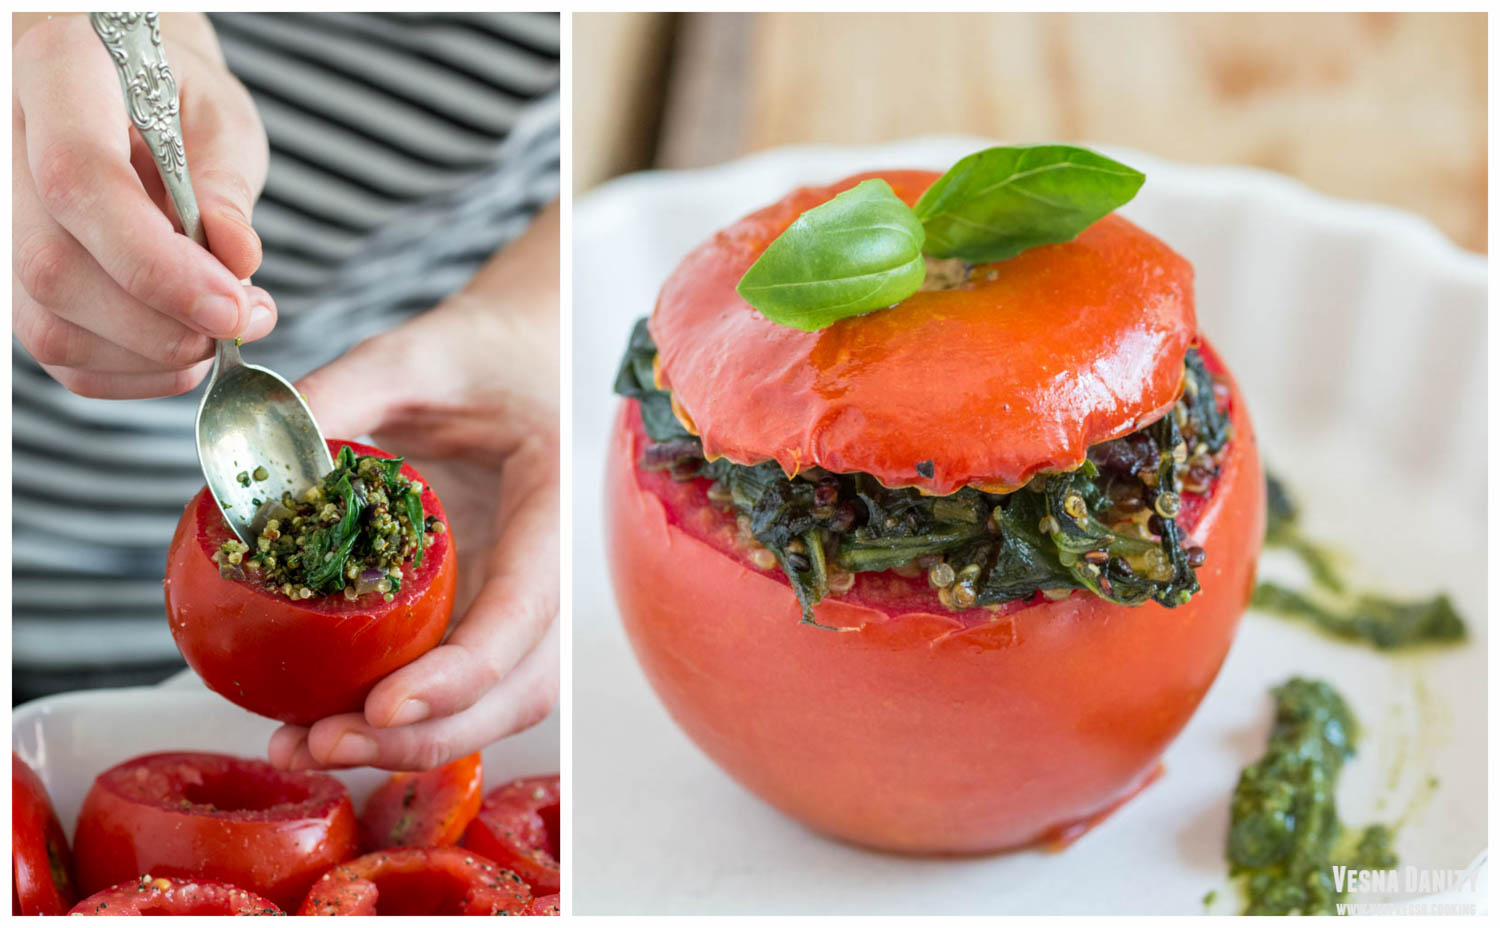 Quinoa and Spinach Stuffed Tomato (Vegan)